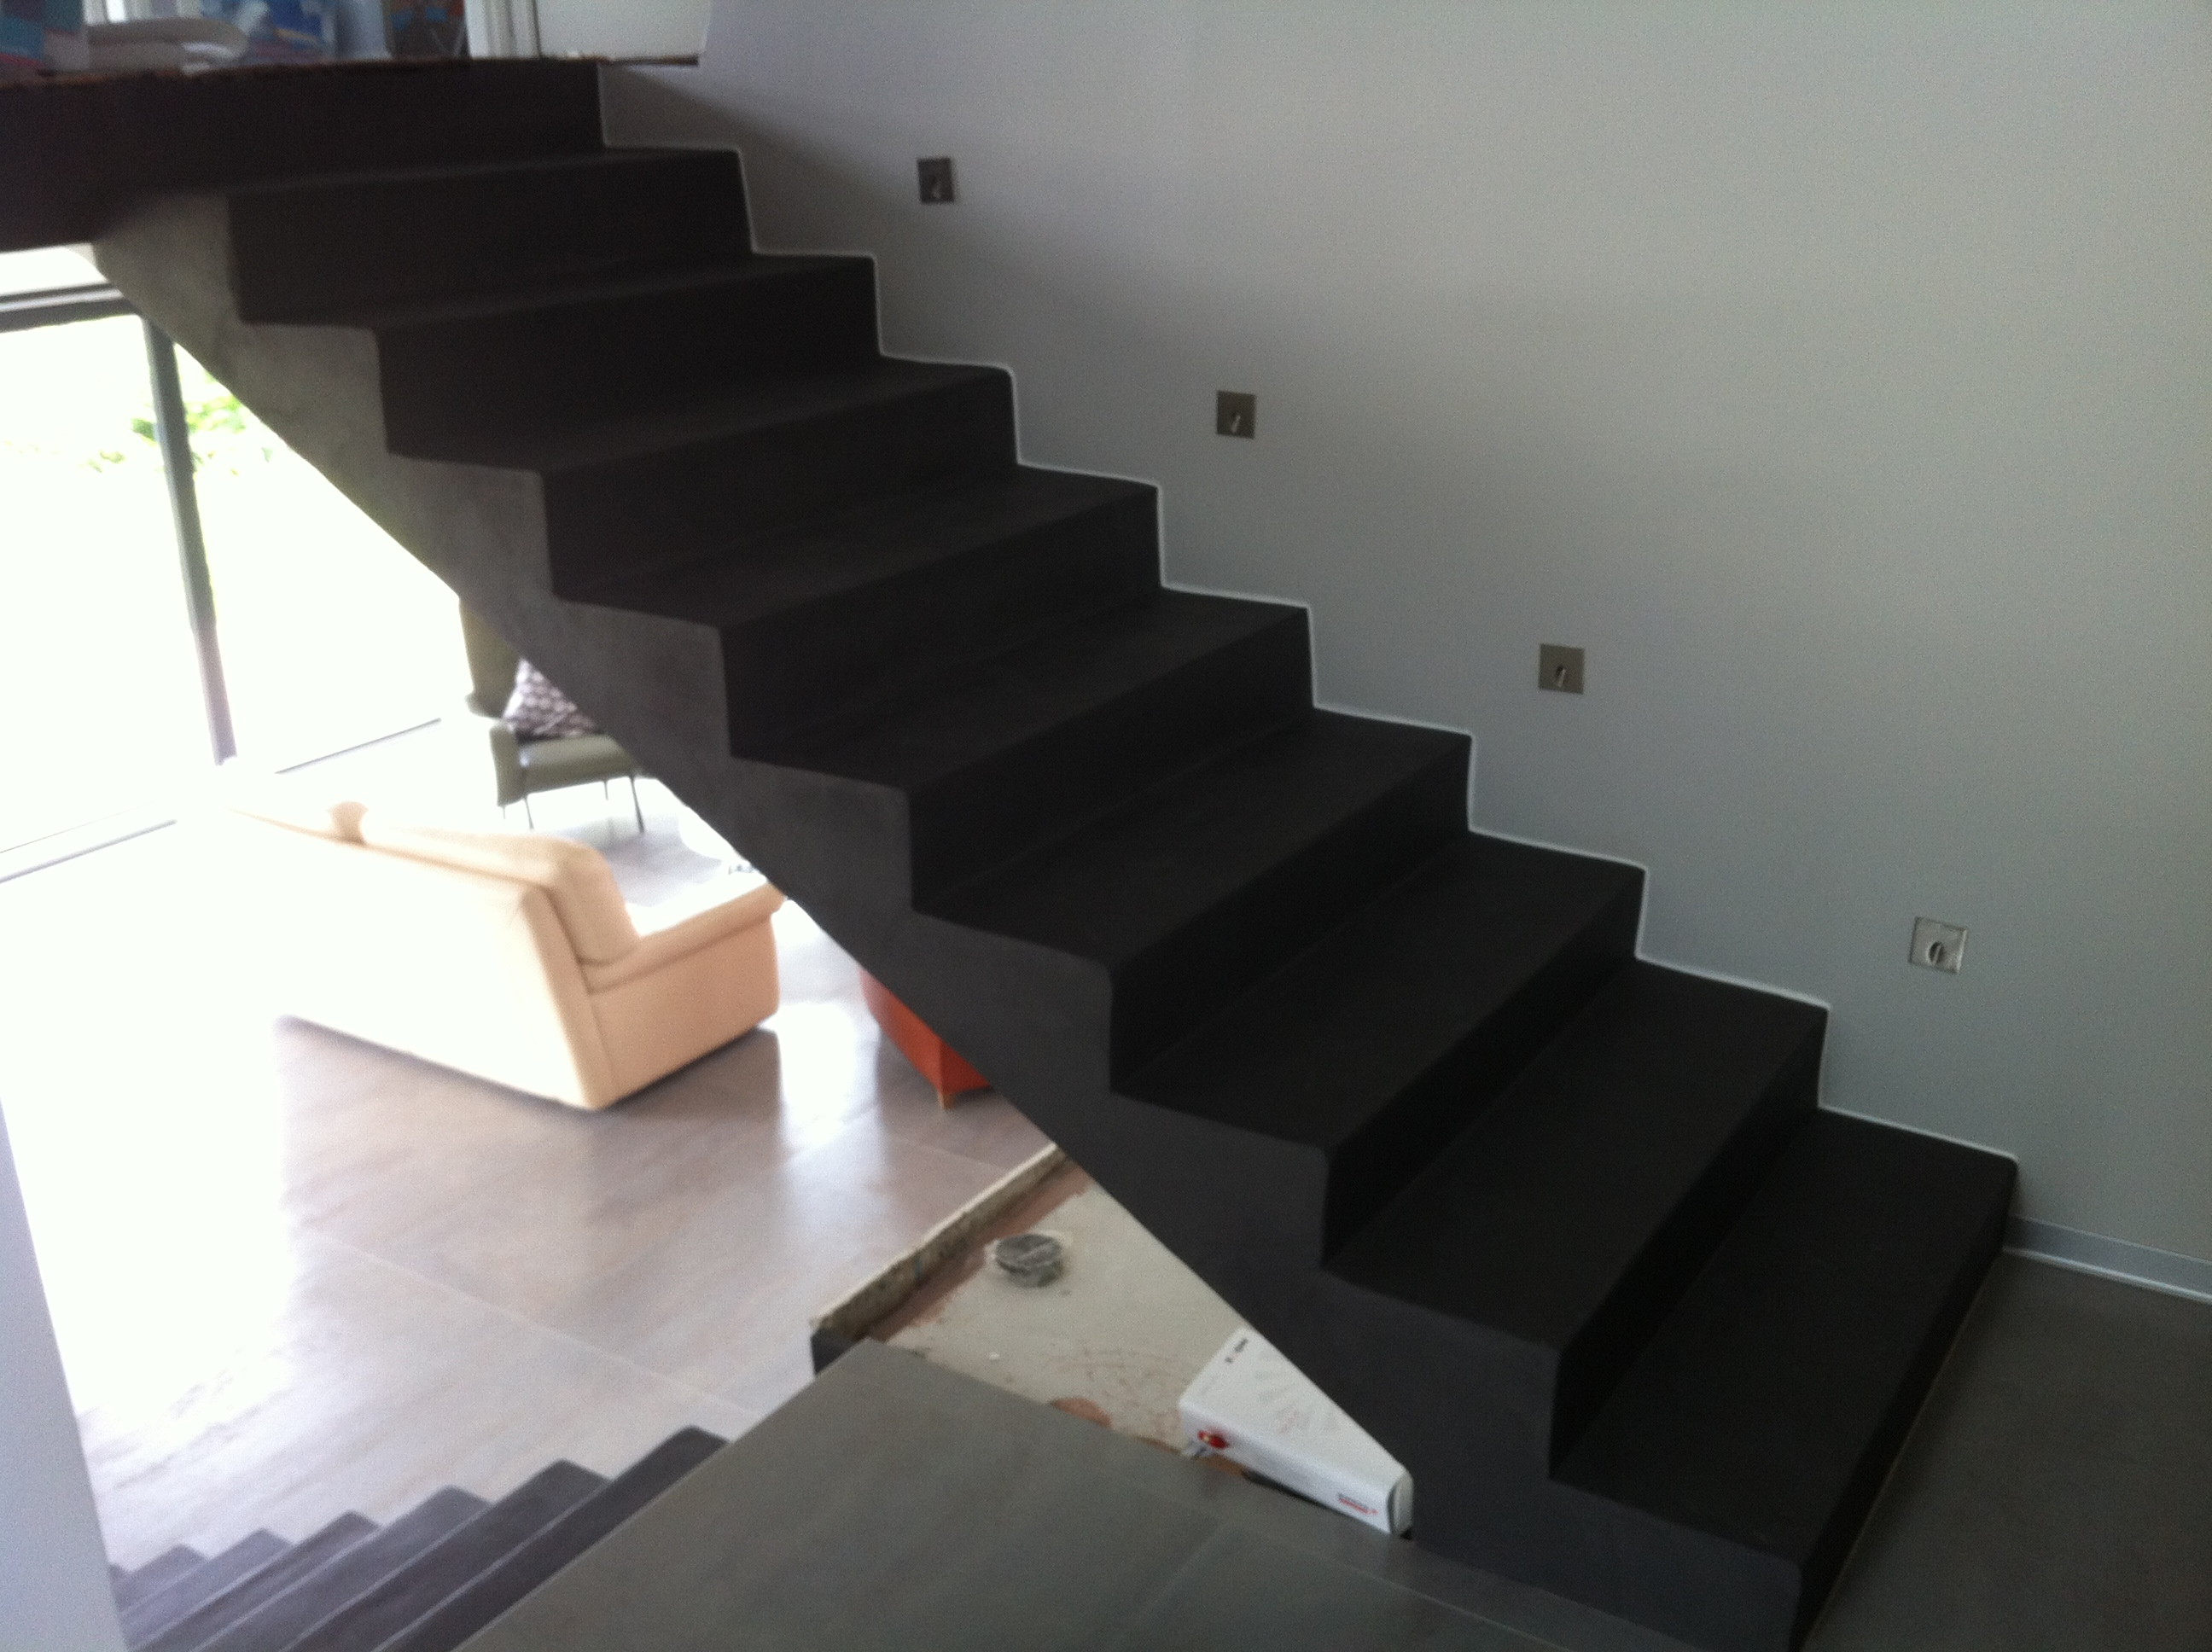 Renovation escalier beton interieur dw71 jornalagora for Habillage escalier beton interieur